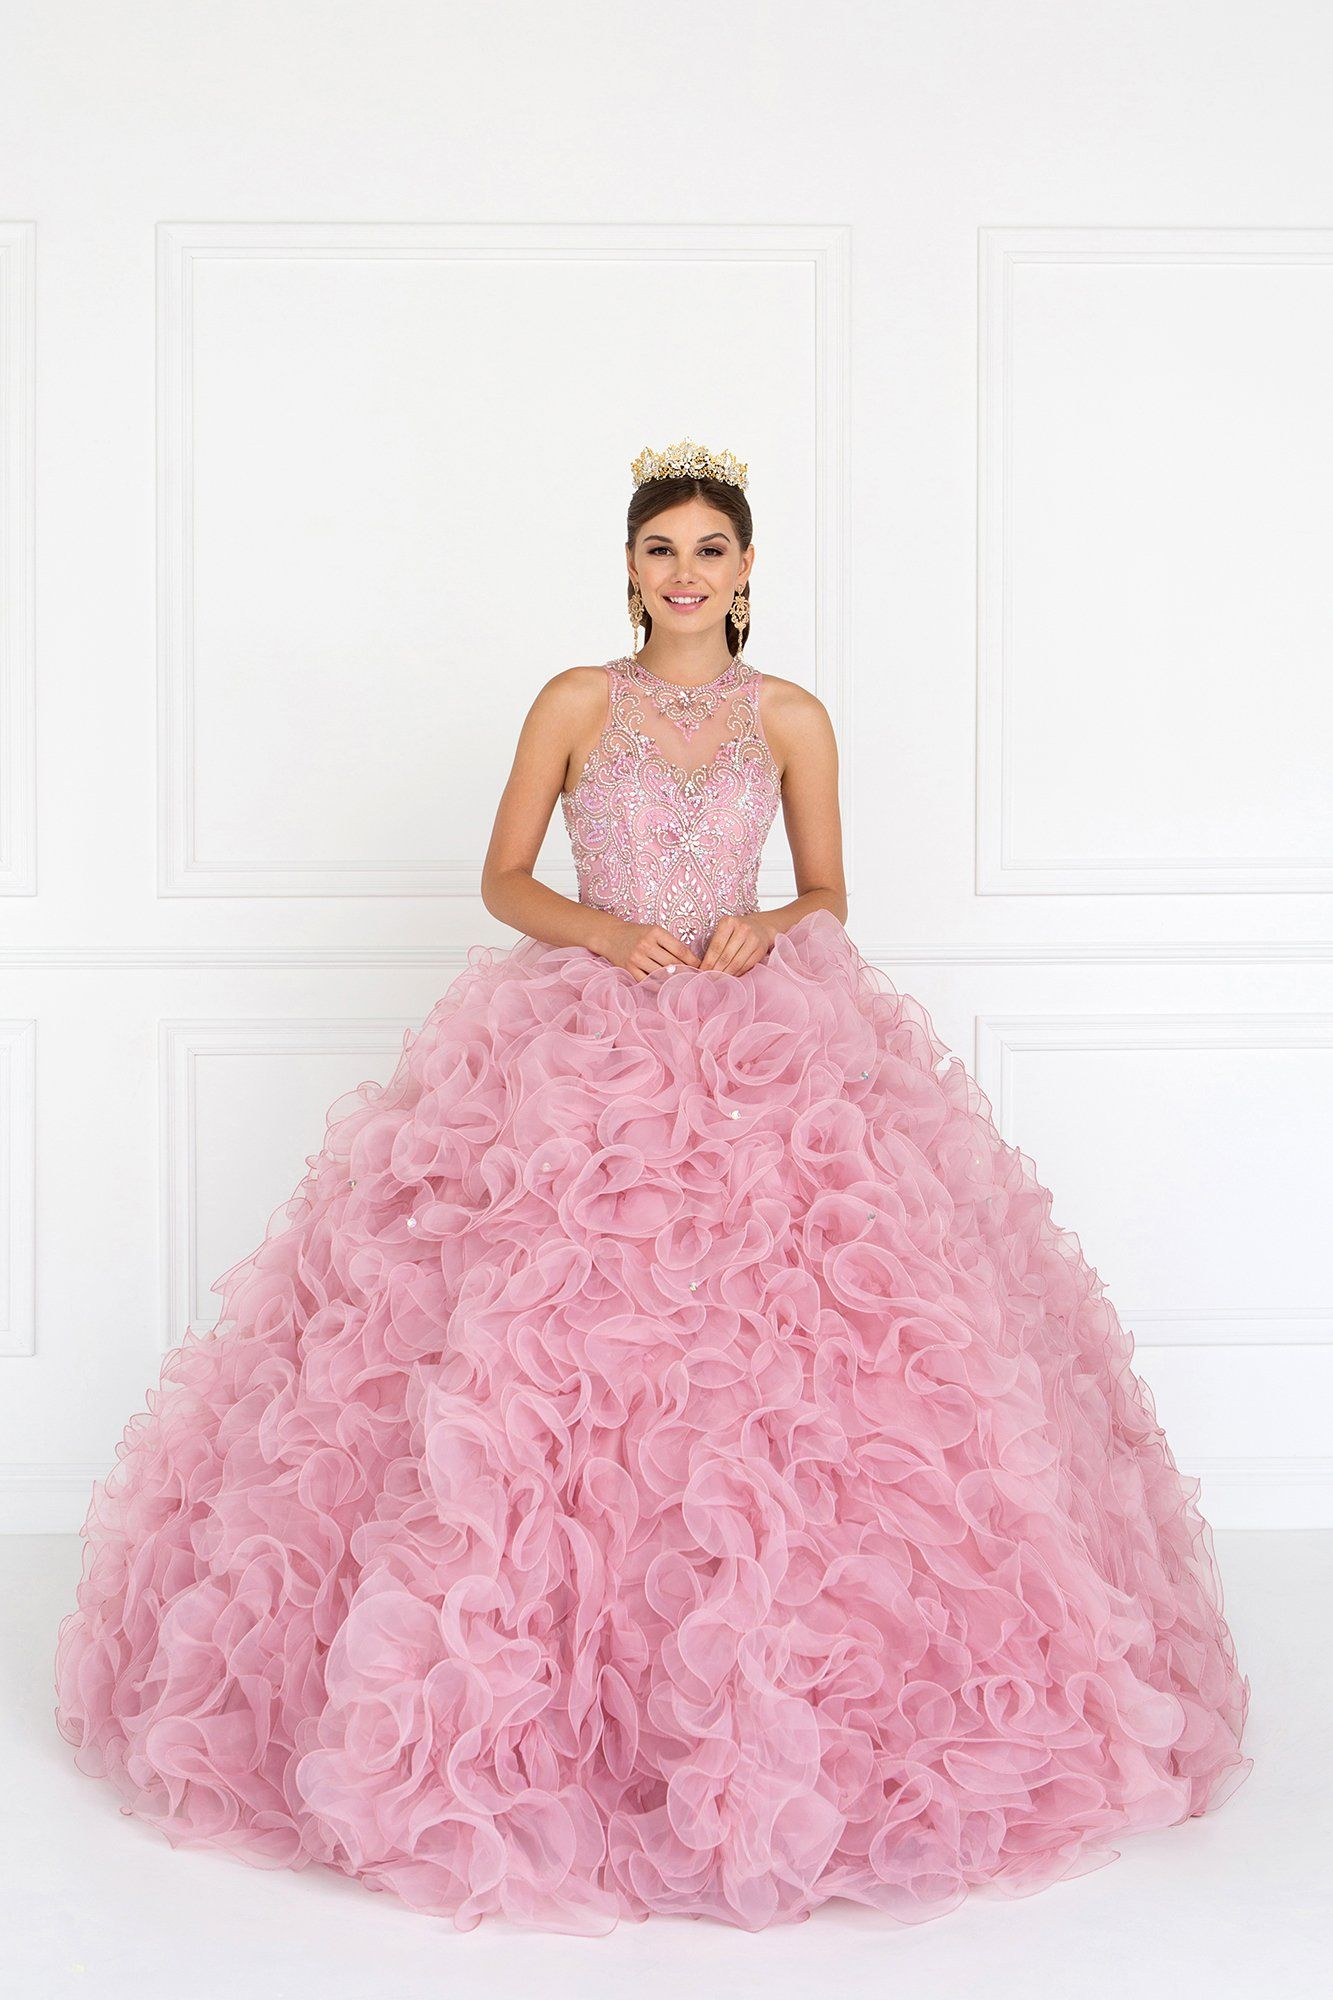 Fashion week Dresses quinceanera puffy pink for woman